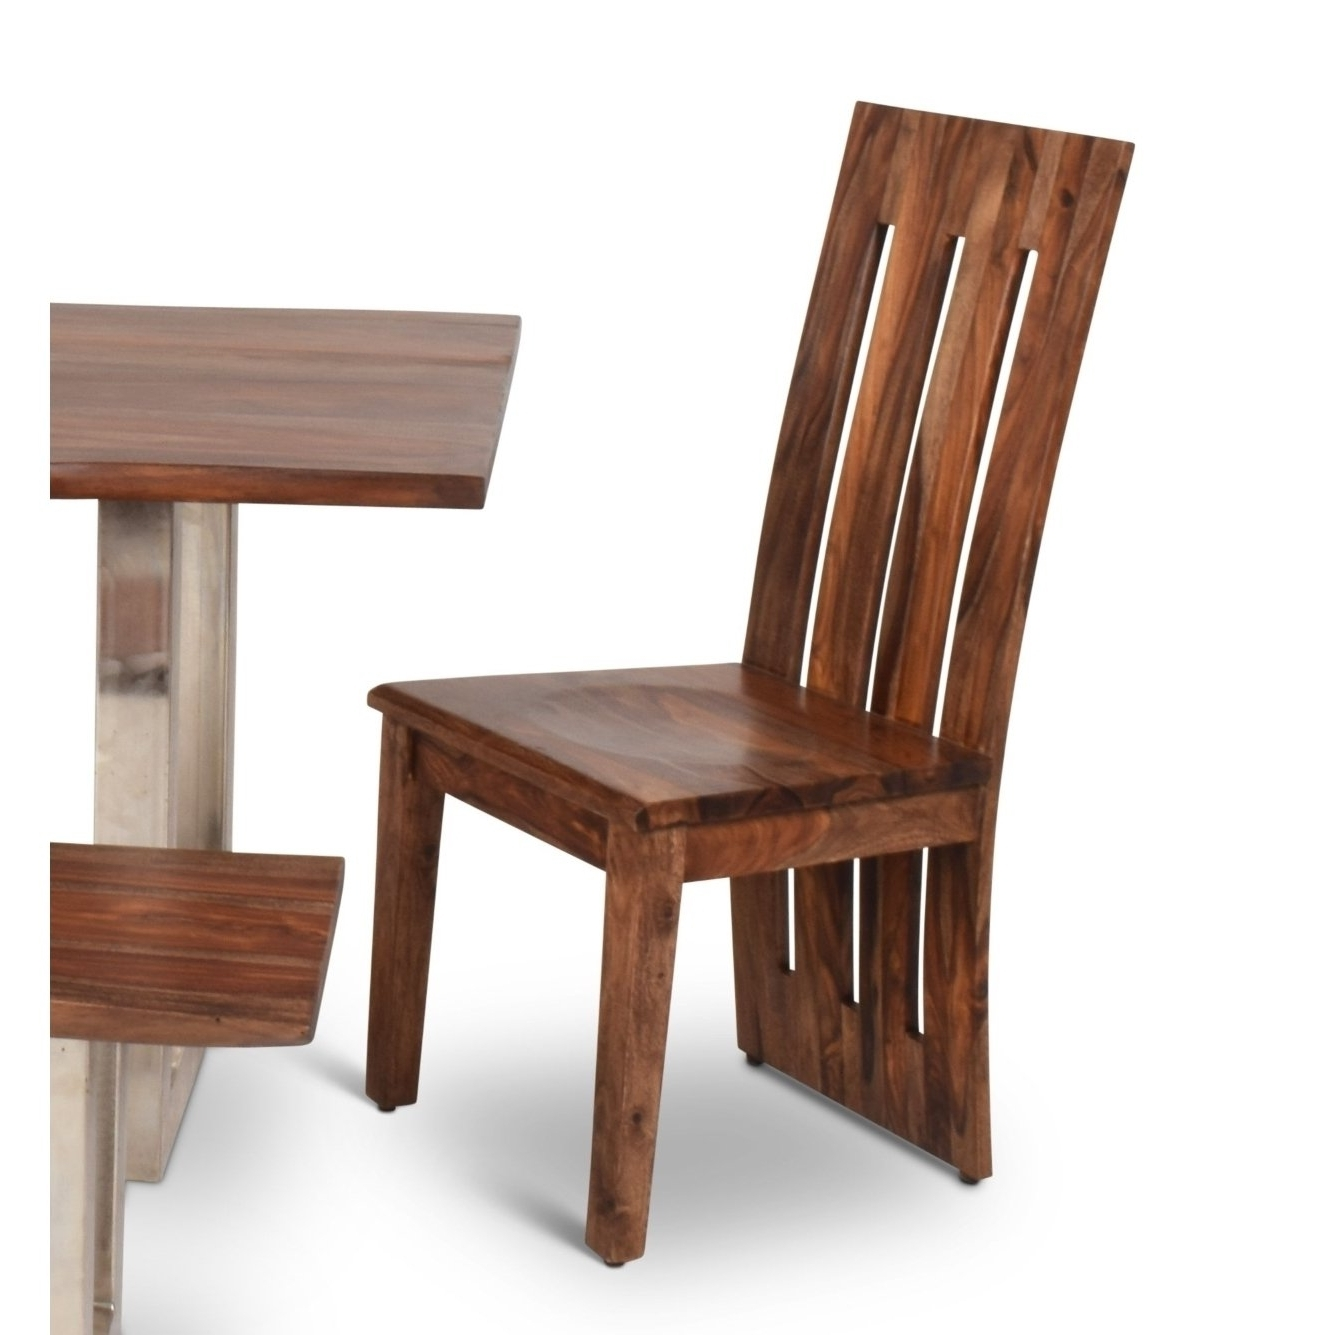 2018 Sheesham Wood Dining Chairs Pertaining To Shop Rania Sheesham Wood Dining Chairs (Set Of 2)Greyson Living (Gallery 4 of 25)